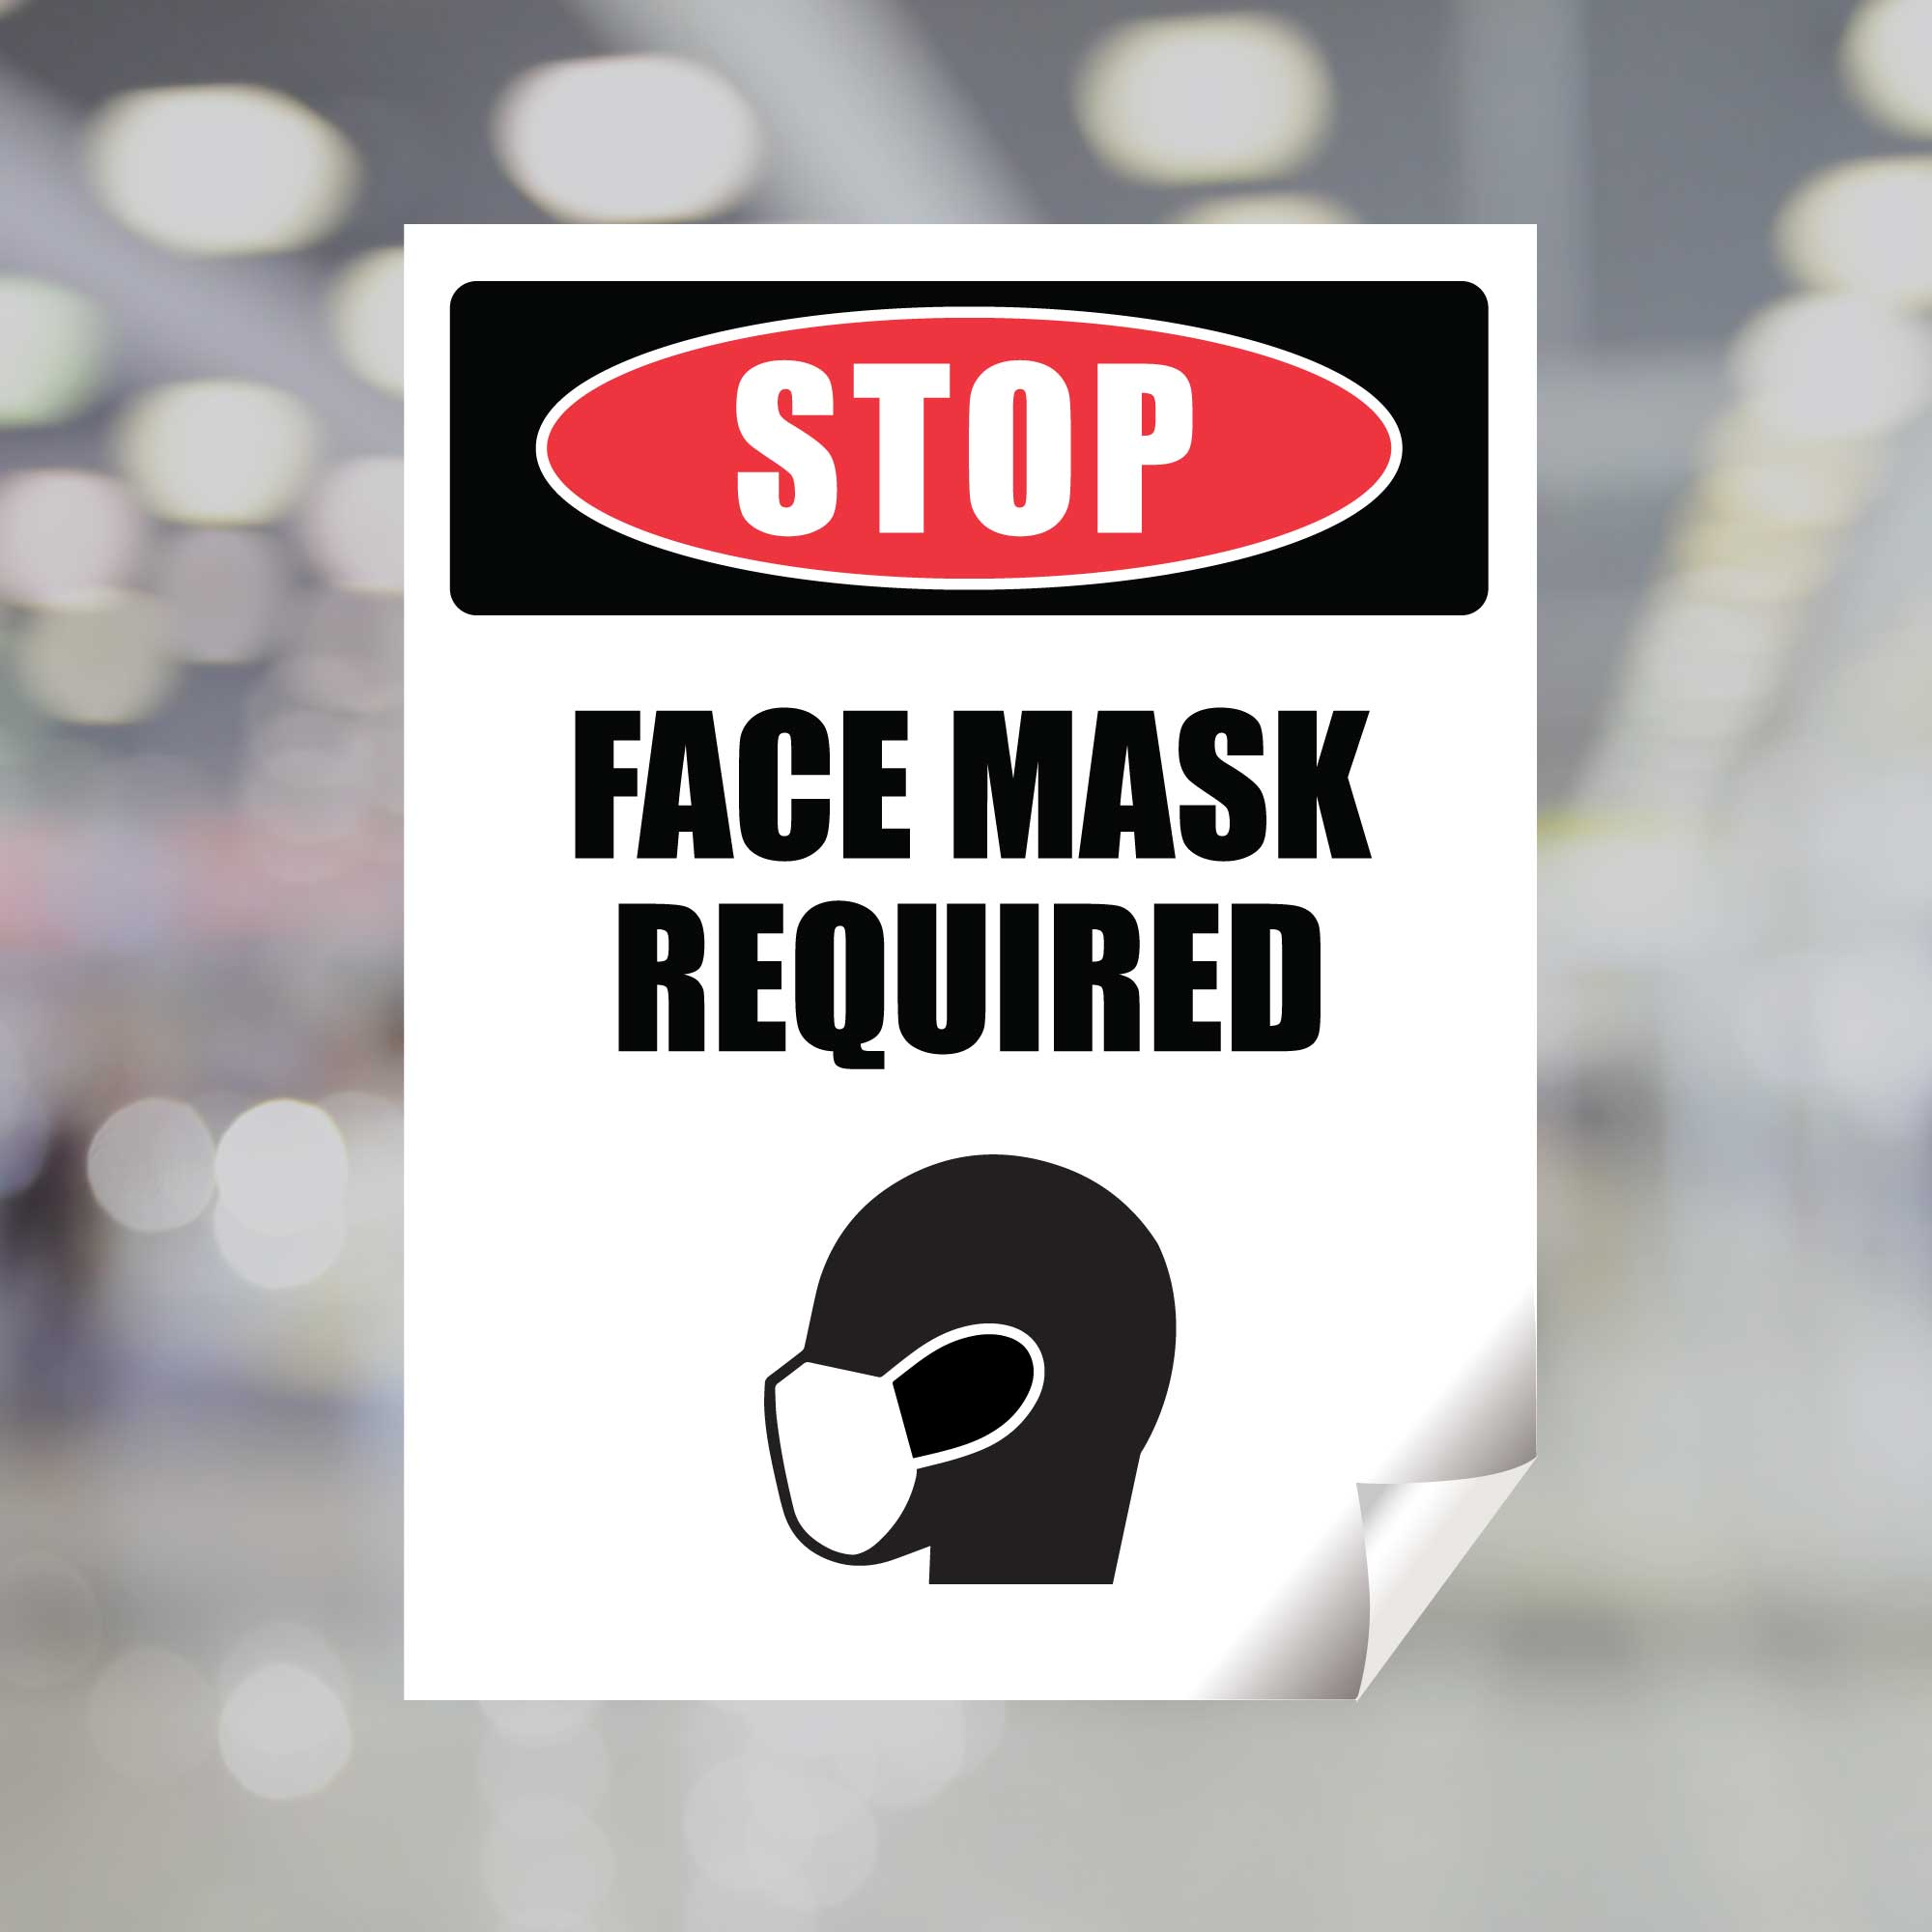 MANDATORY FACE MASK REQUIRED TO ENTER STICKER Store Business Decal Sign 4